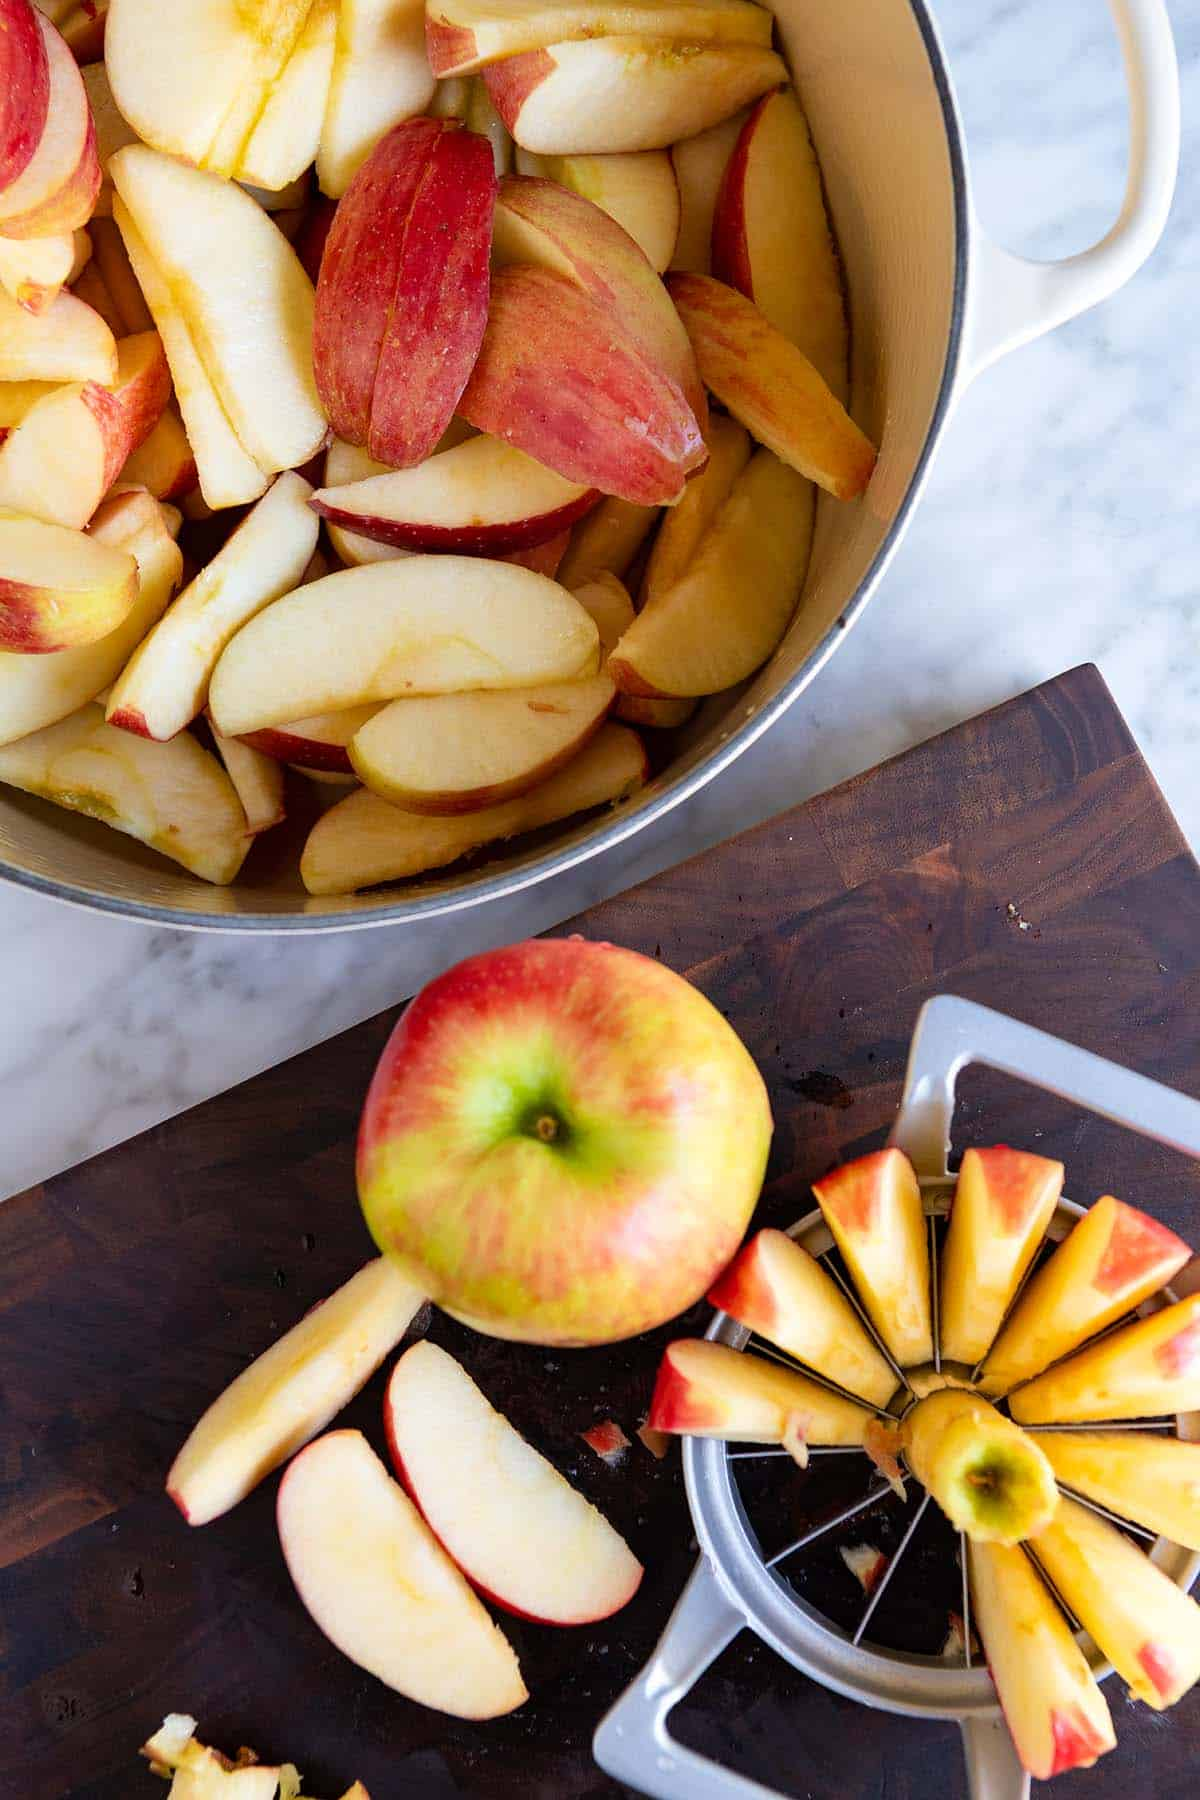 Step shot showing apples cut into wedges ready for making applesauce.